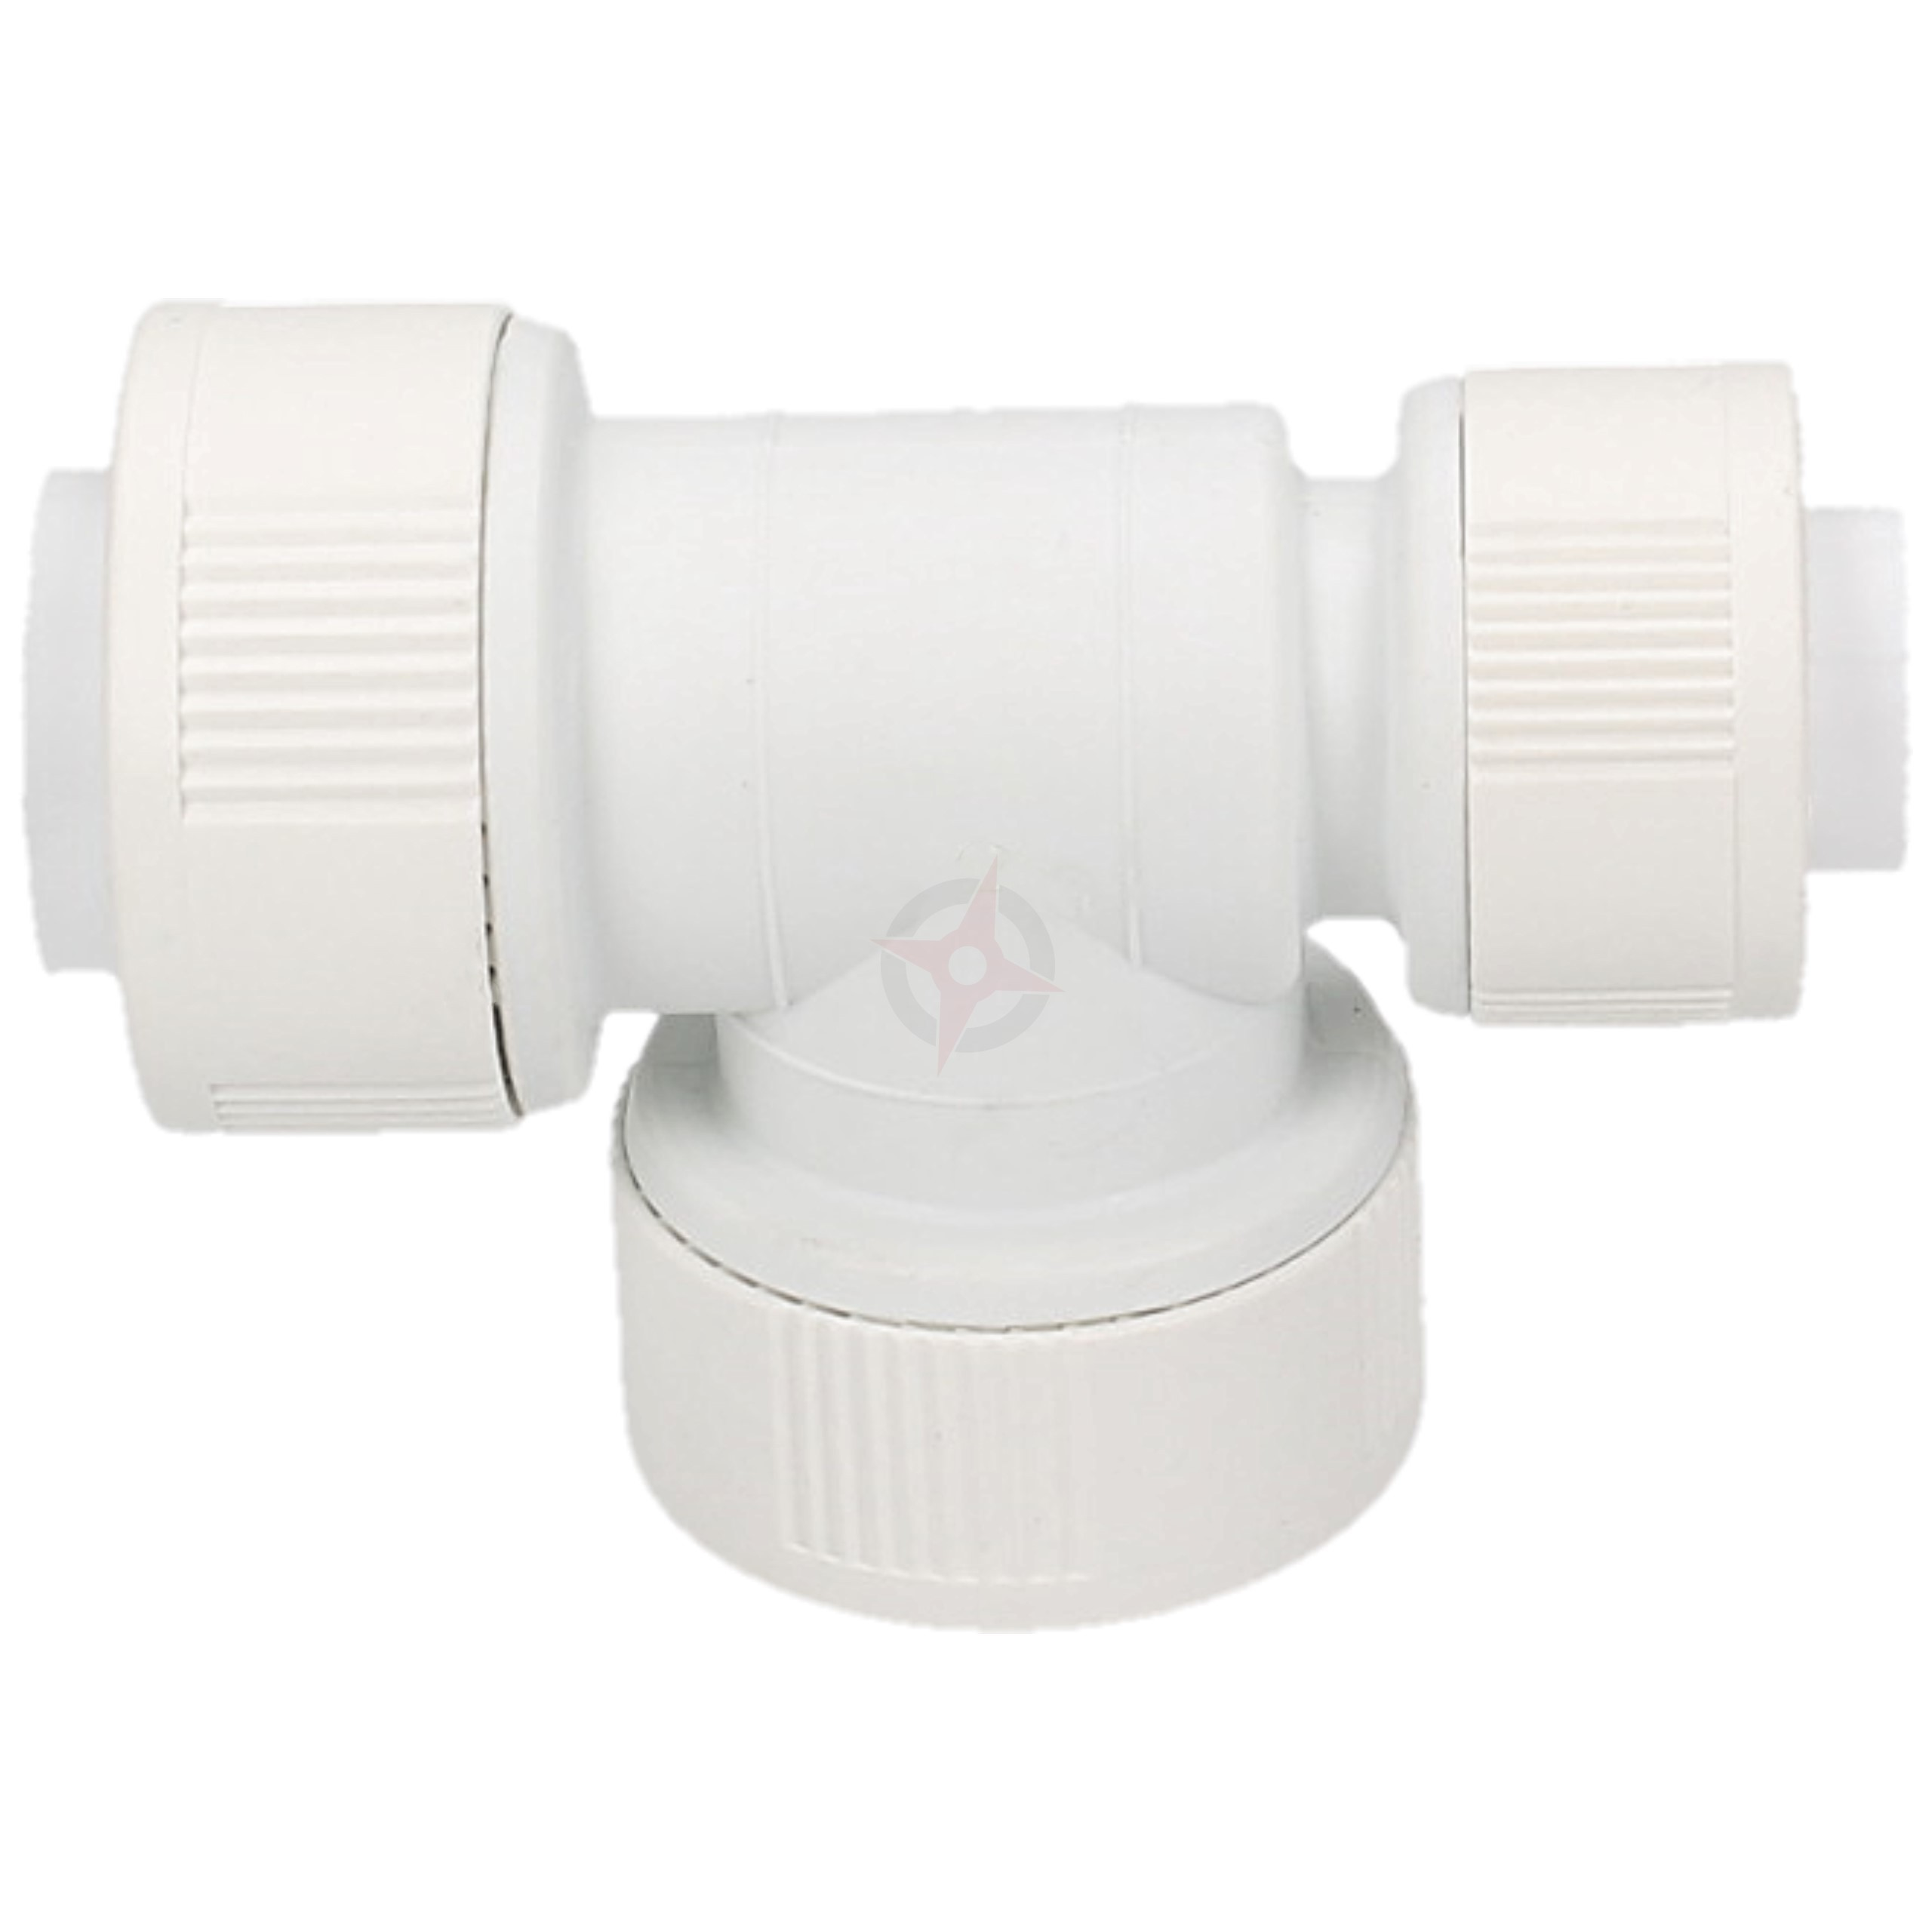 Whitespeed Push Fit 22mm x 15mm x 22mm Reducing Tee (15mm End)